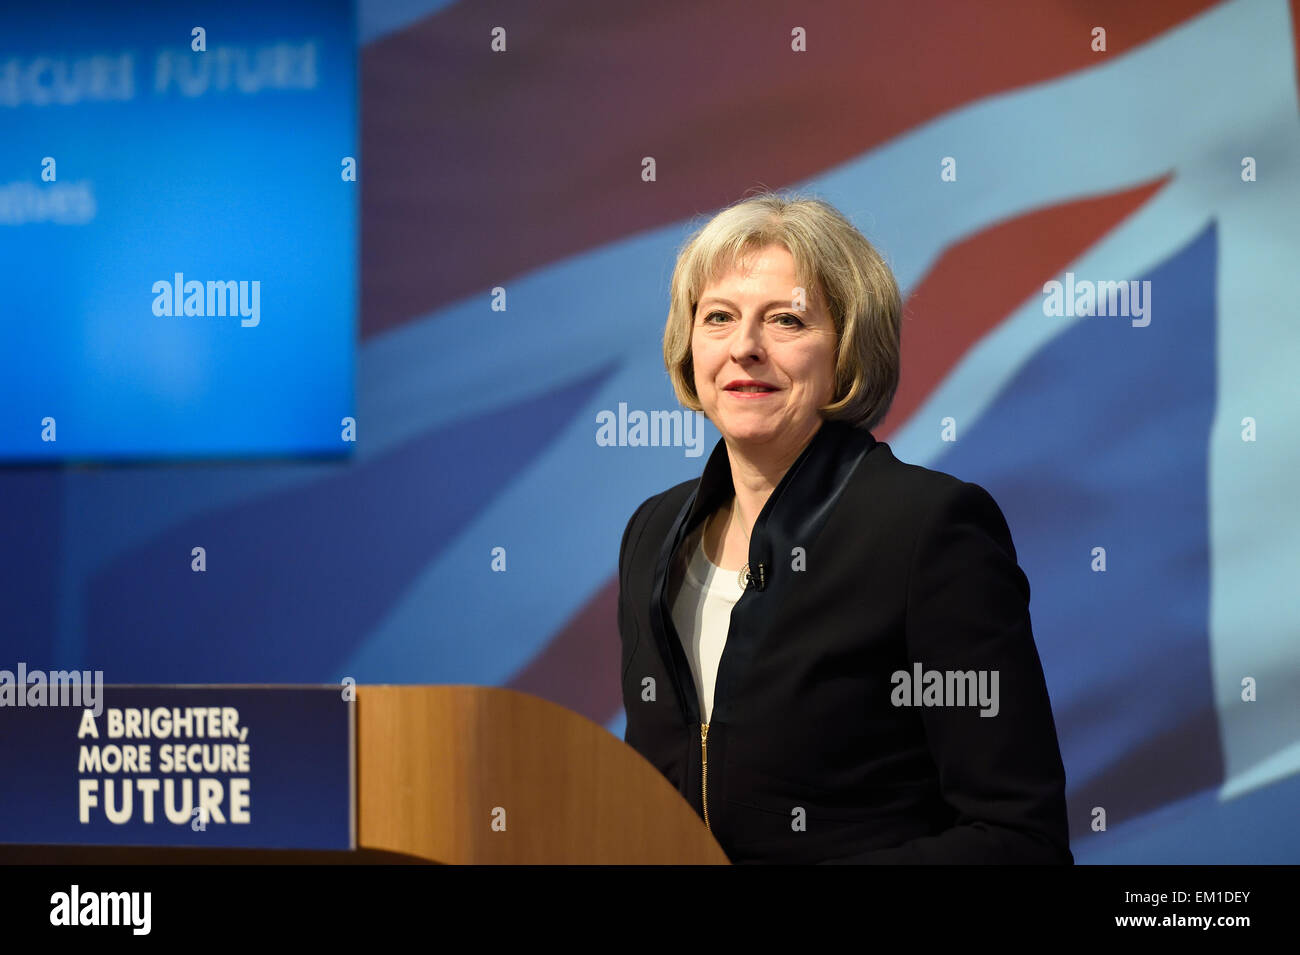 Theresa May Home Secretary and Conservative MP at the launch of the Conservative Party Manifesto 2015 - Stock Image